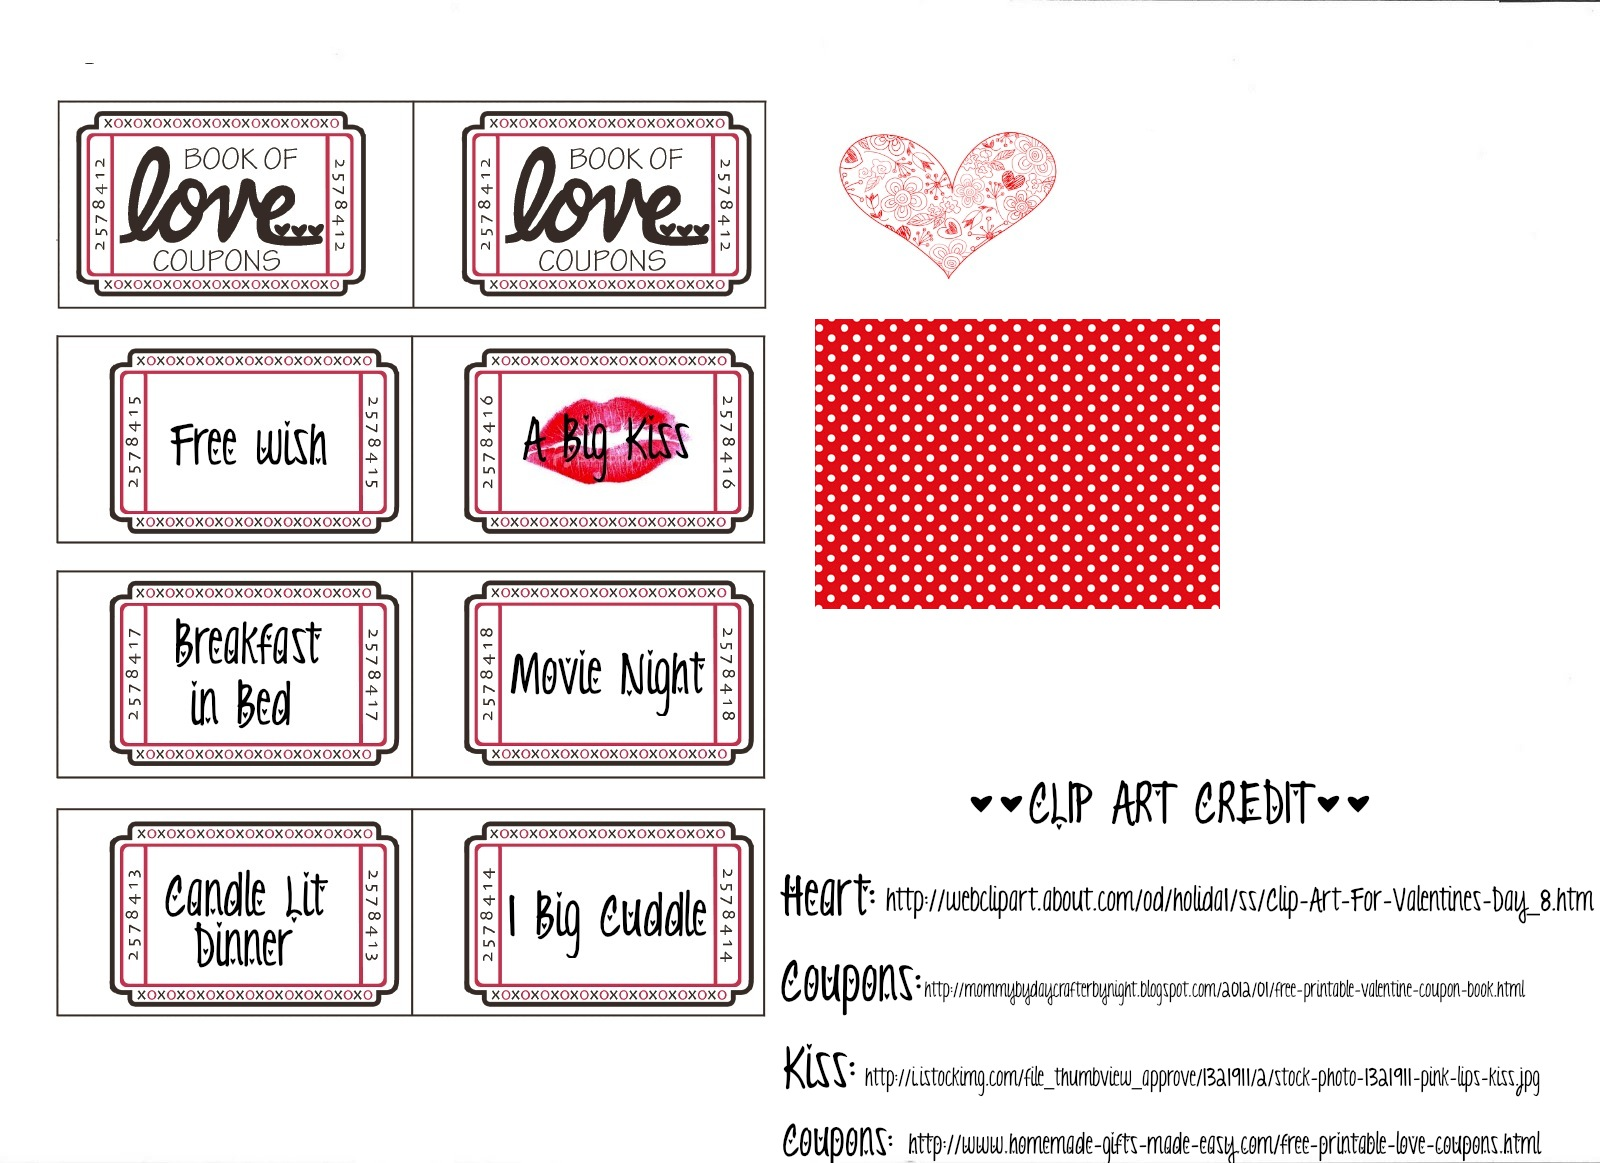 diy coupon book template sample resume service diy coupon book template diy love coupons the dating divas click image right click the image